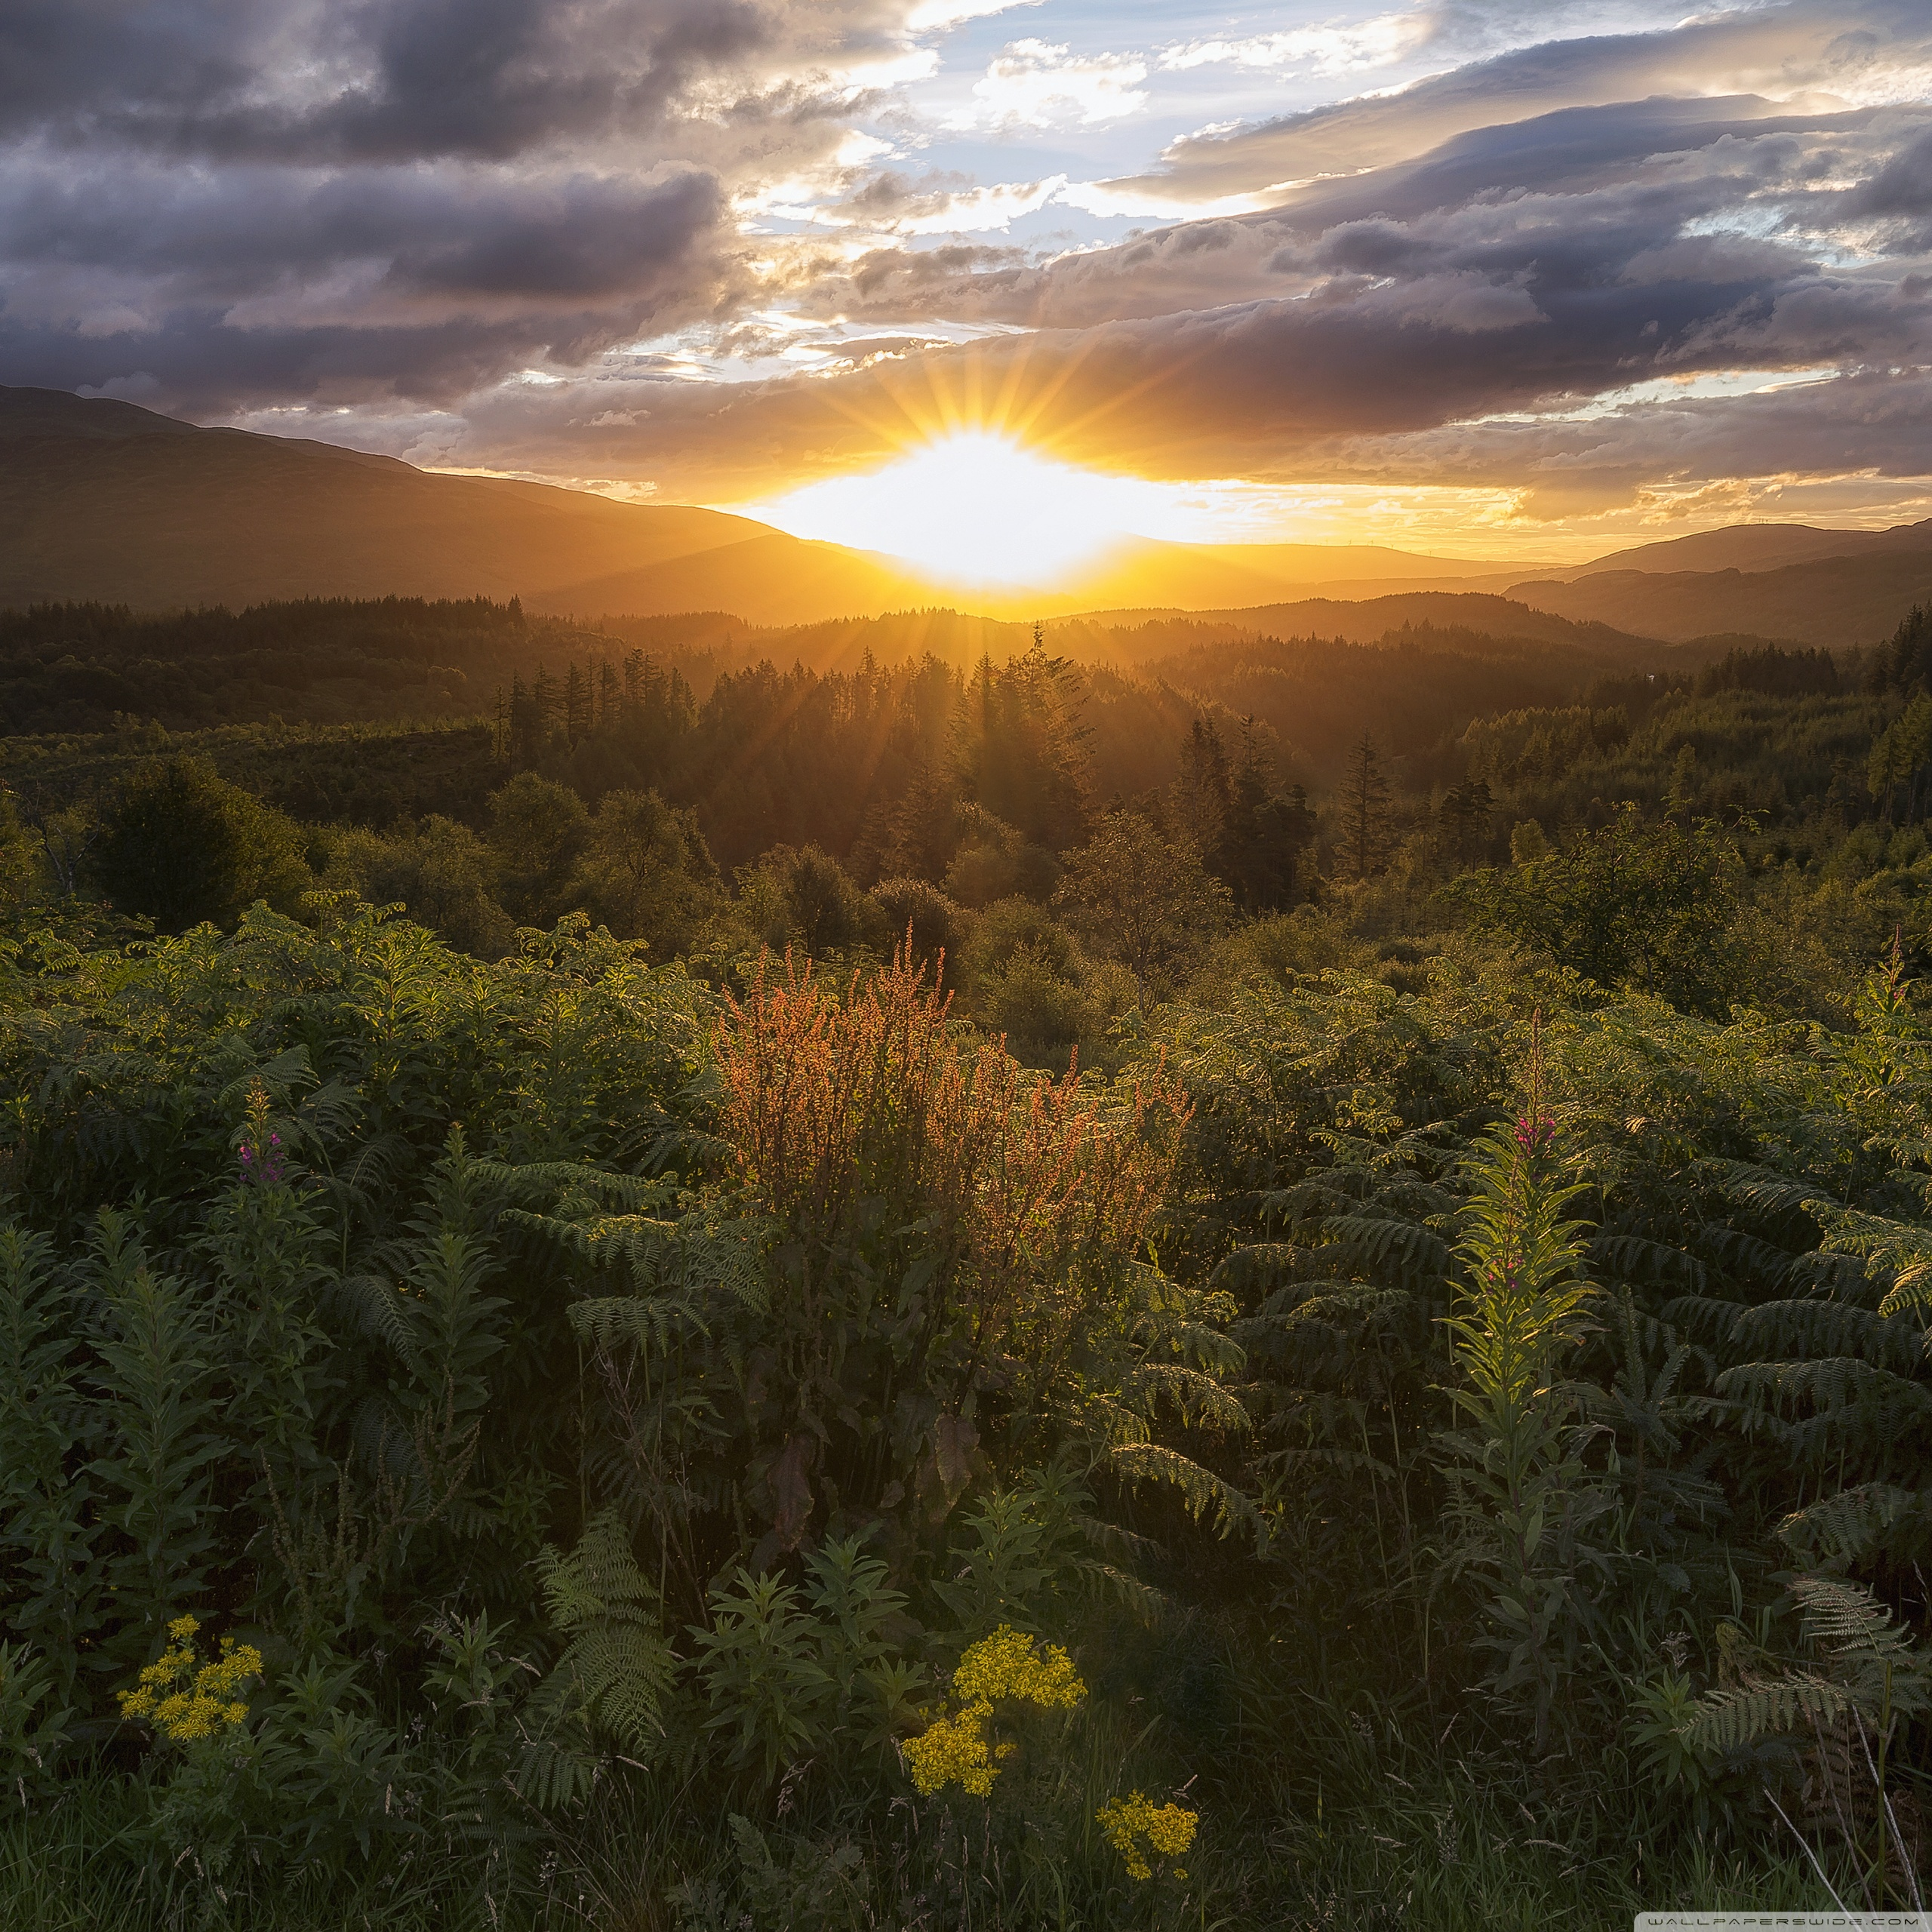 Wallpaper Place Images Wallpapers Nature 1920x1200: Forest Scotland Nature HD Background Wallpaperscraft